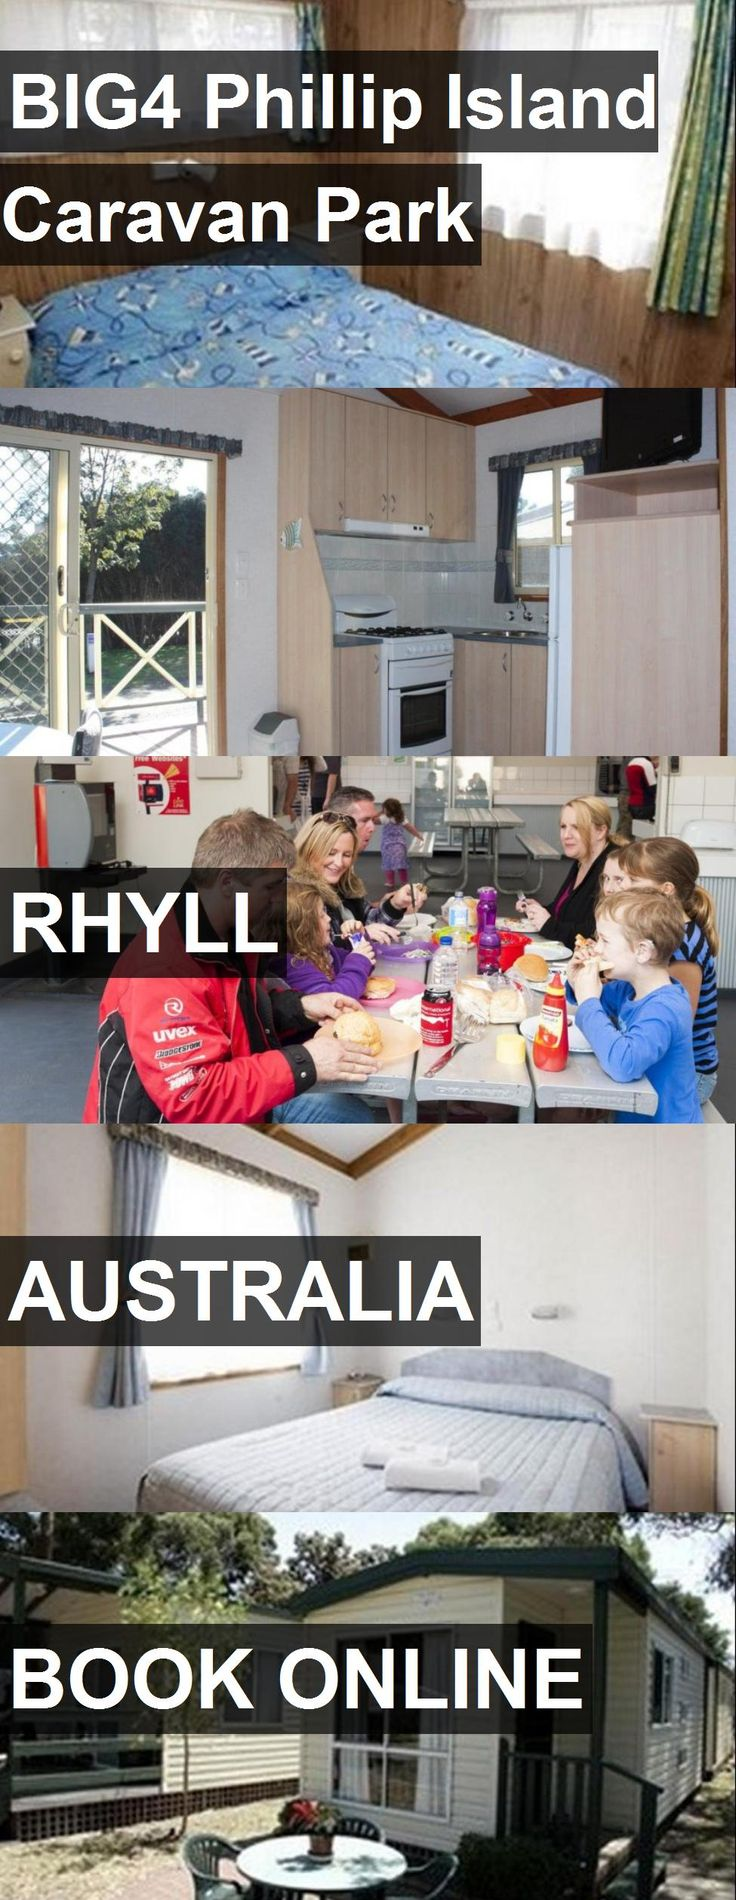 Hotel BIG4 Phillip Island Caravan Park in Rhyll, Australia. For more information, photos, reviews and best prices please follow the link. #Australia #Rhyll #travel #vacation #hotel